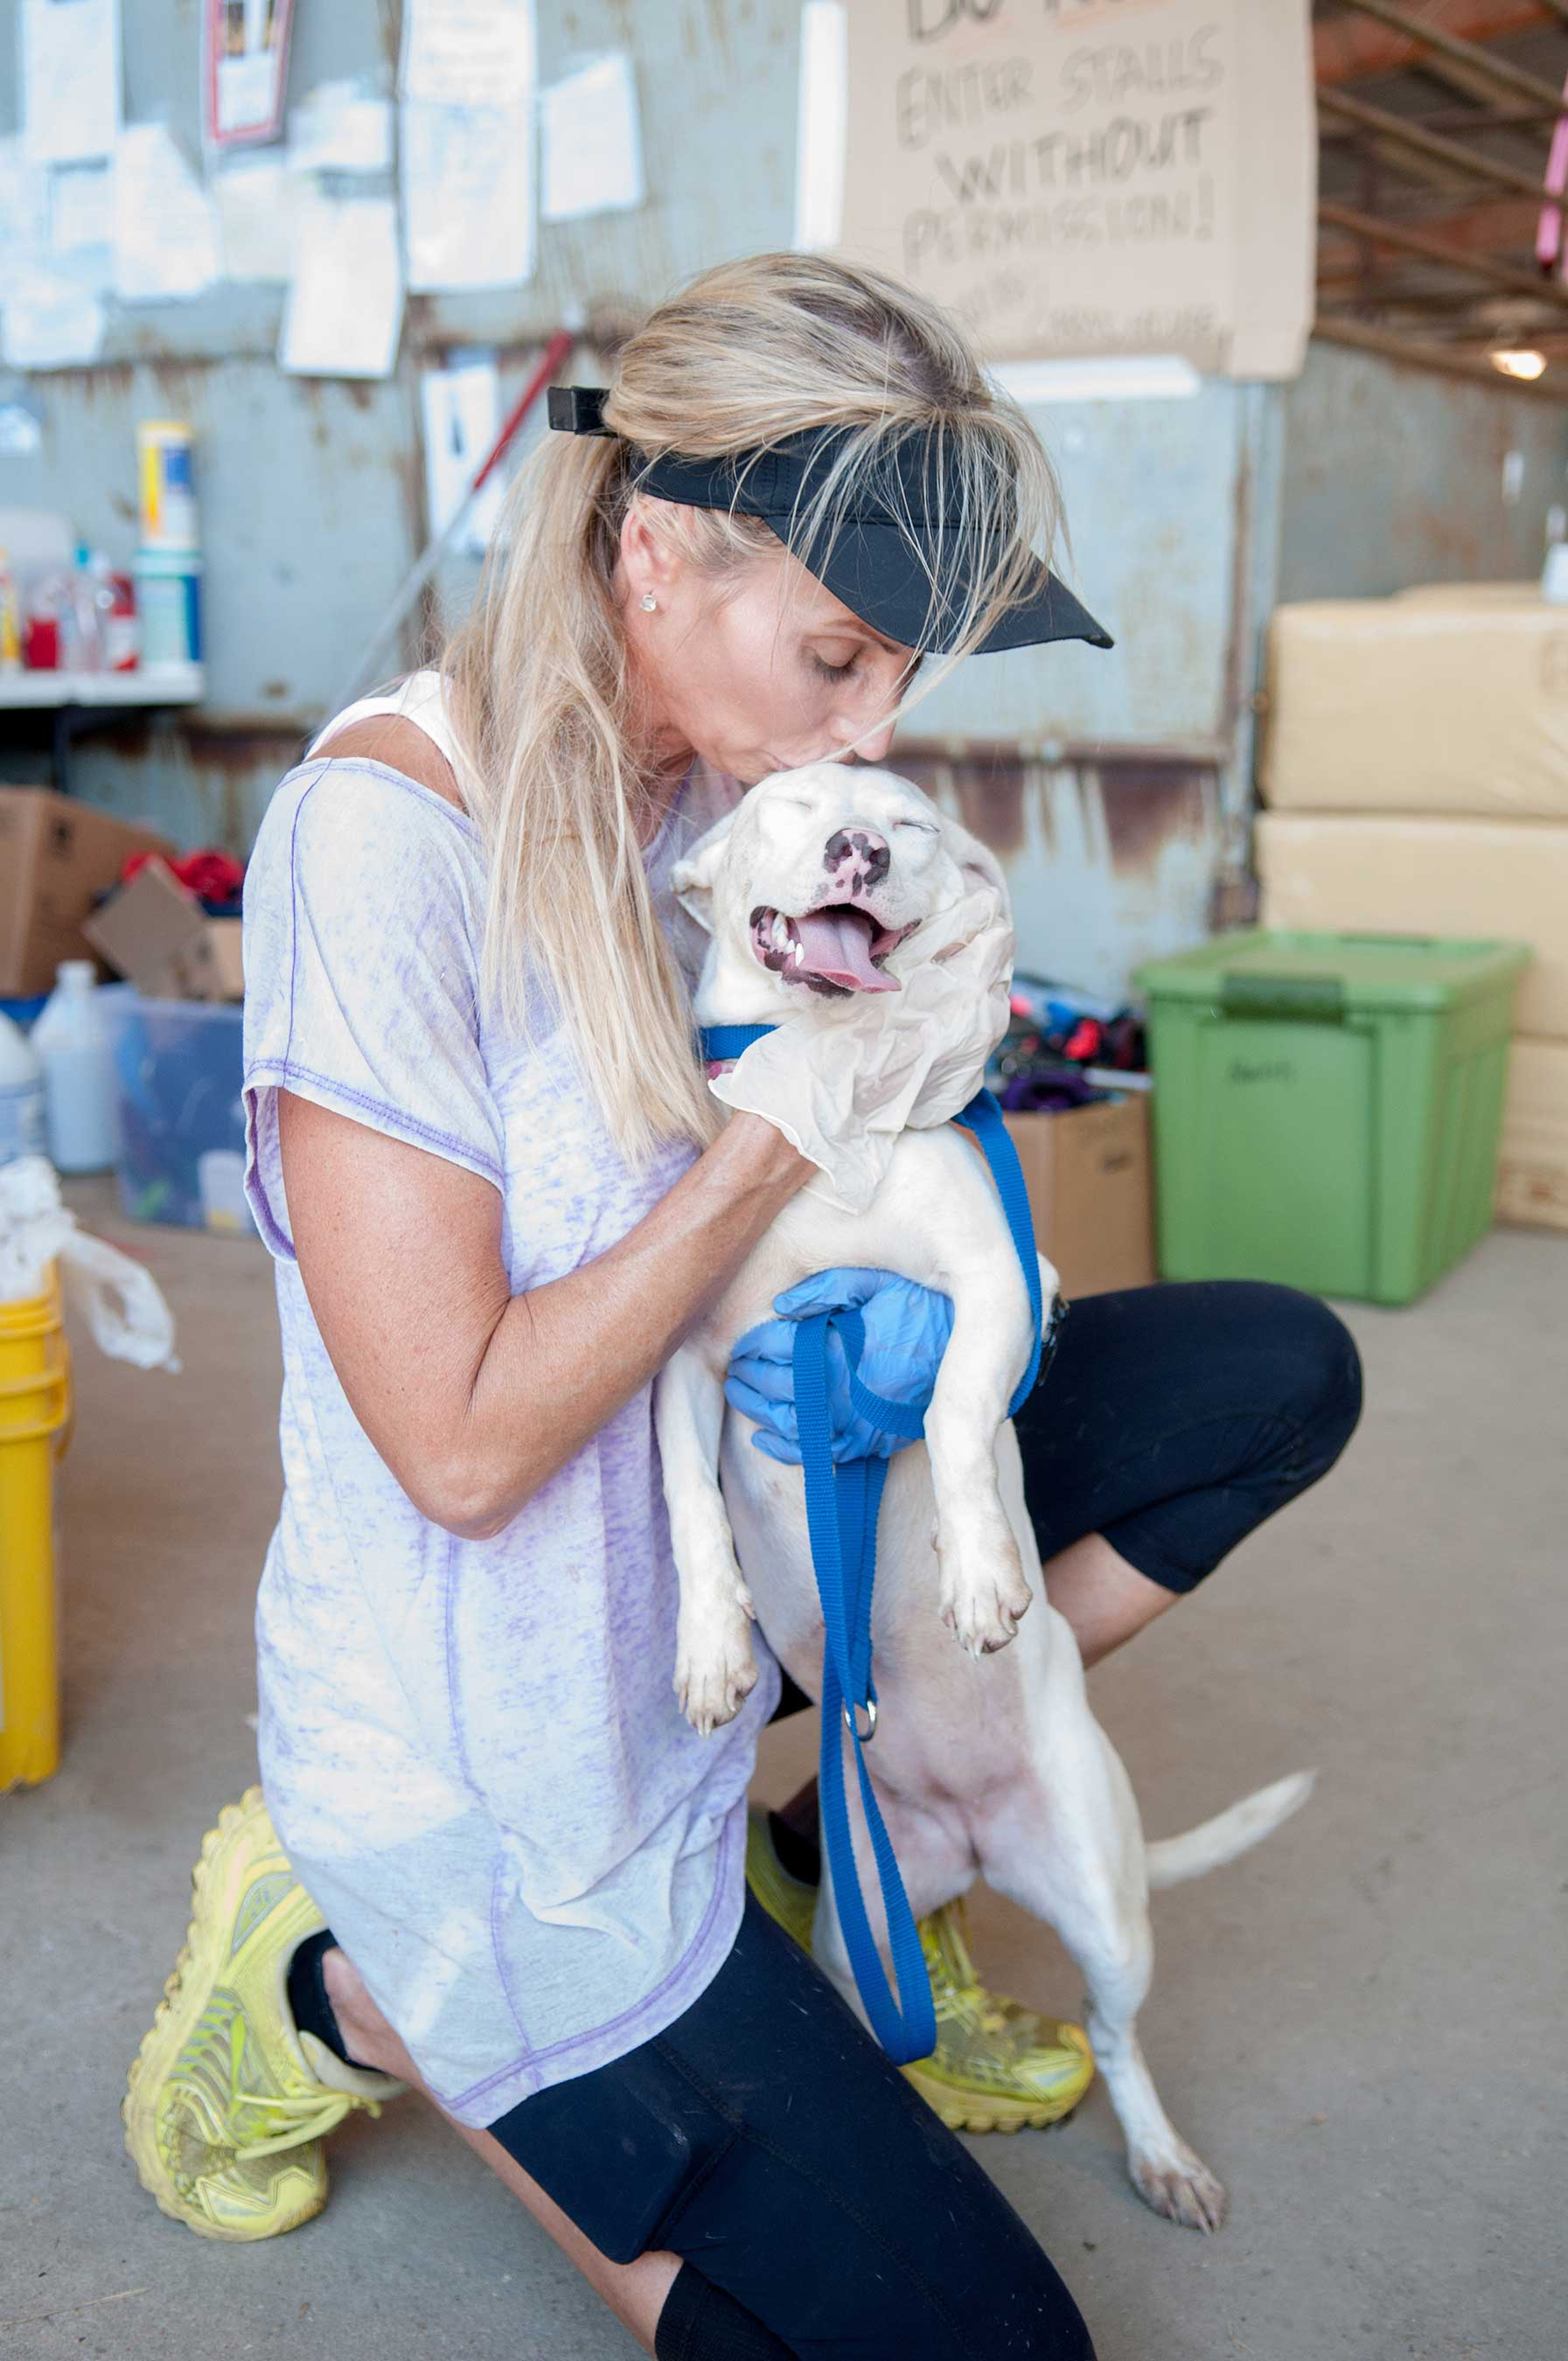 Animal shelter volunteer embracing a dog after severe flooding in Louisiana.